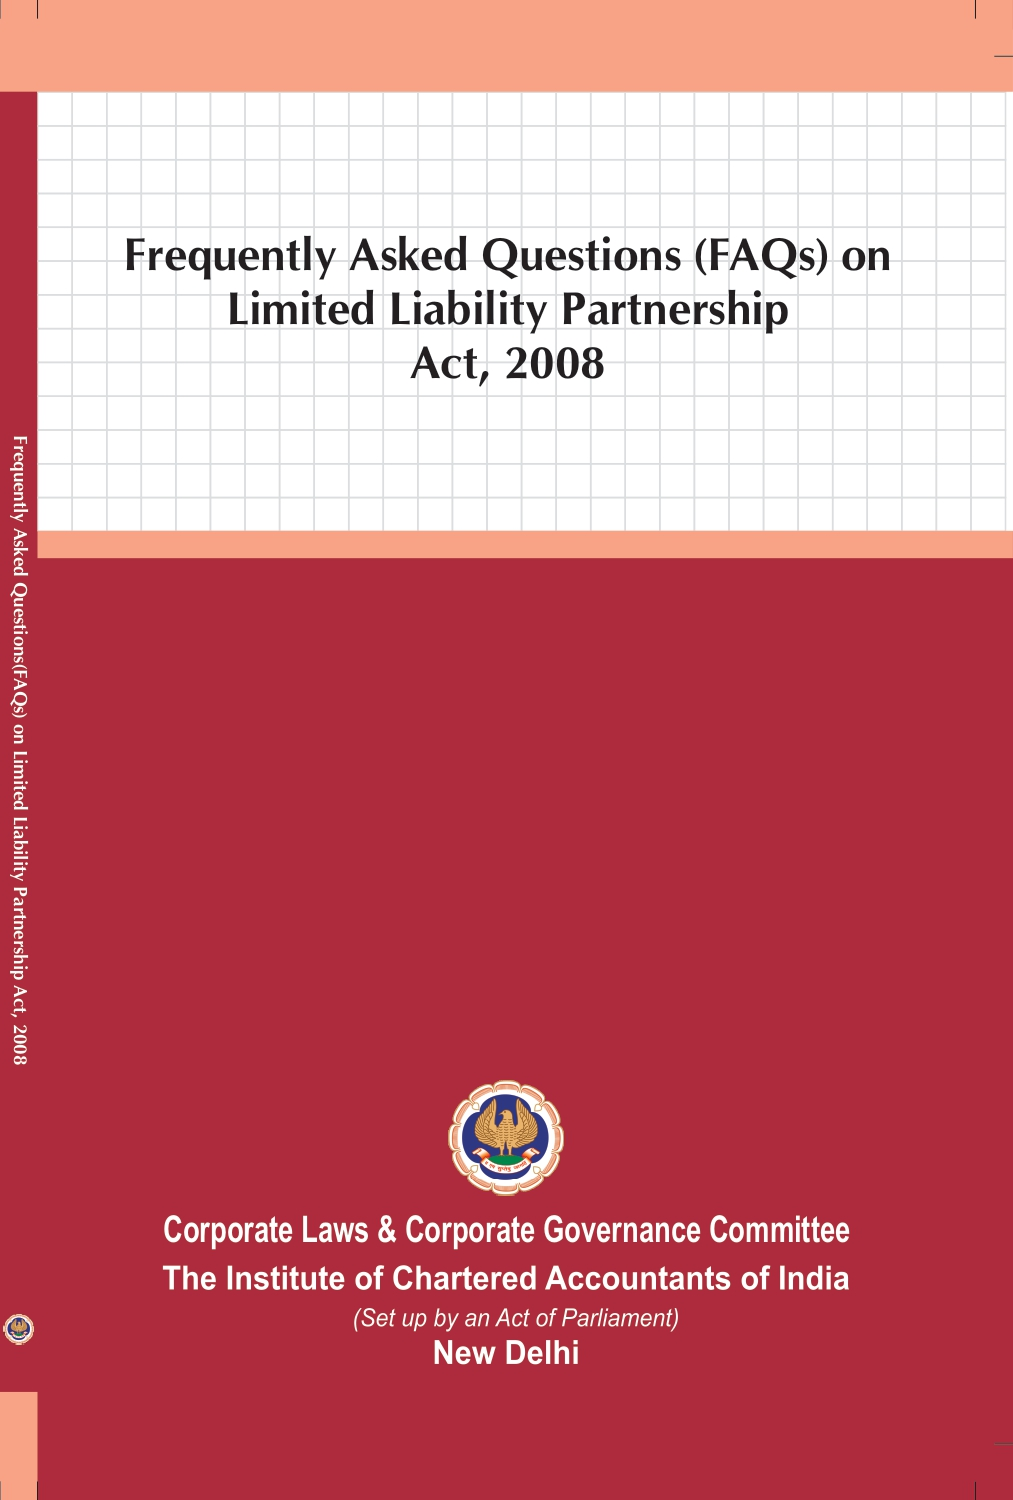 Frequently Asked Questions (FAQs) on Limited Liability Partnership Act, 2008 (January, 2021)